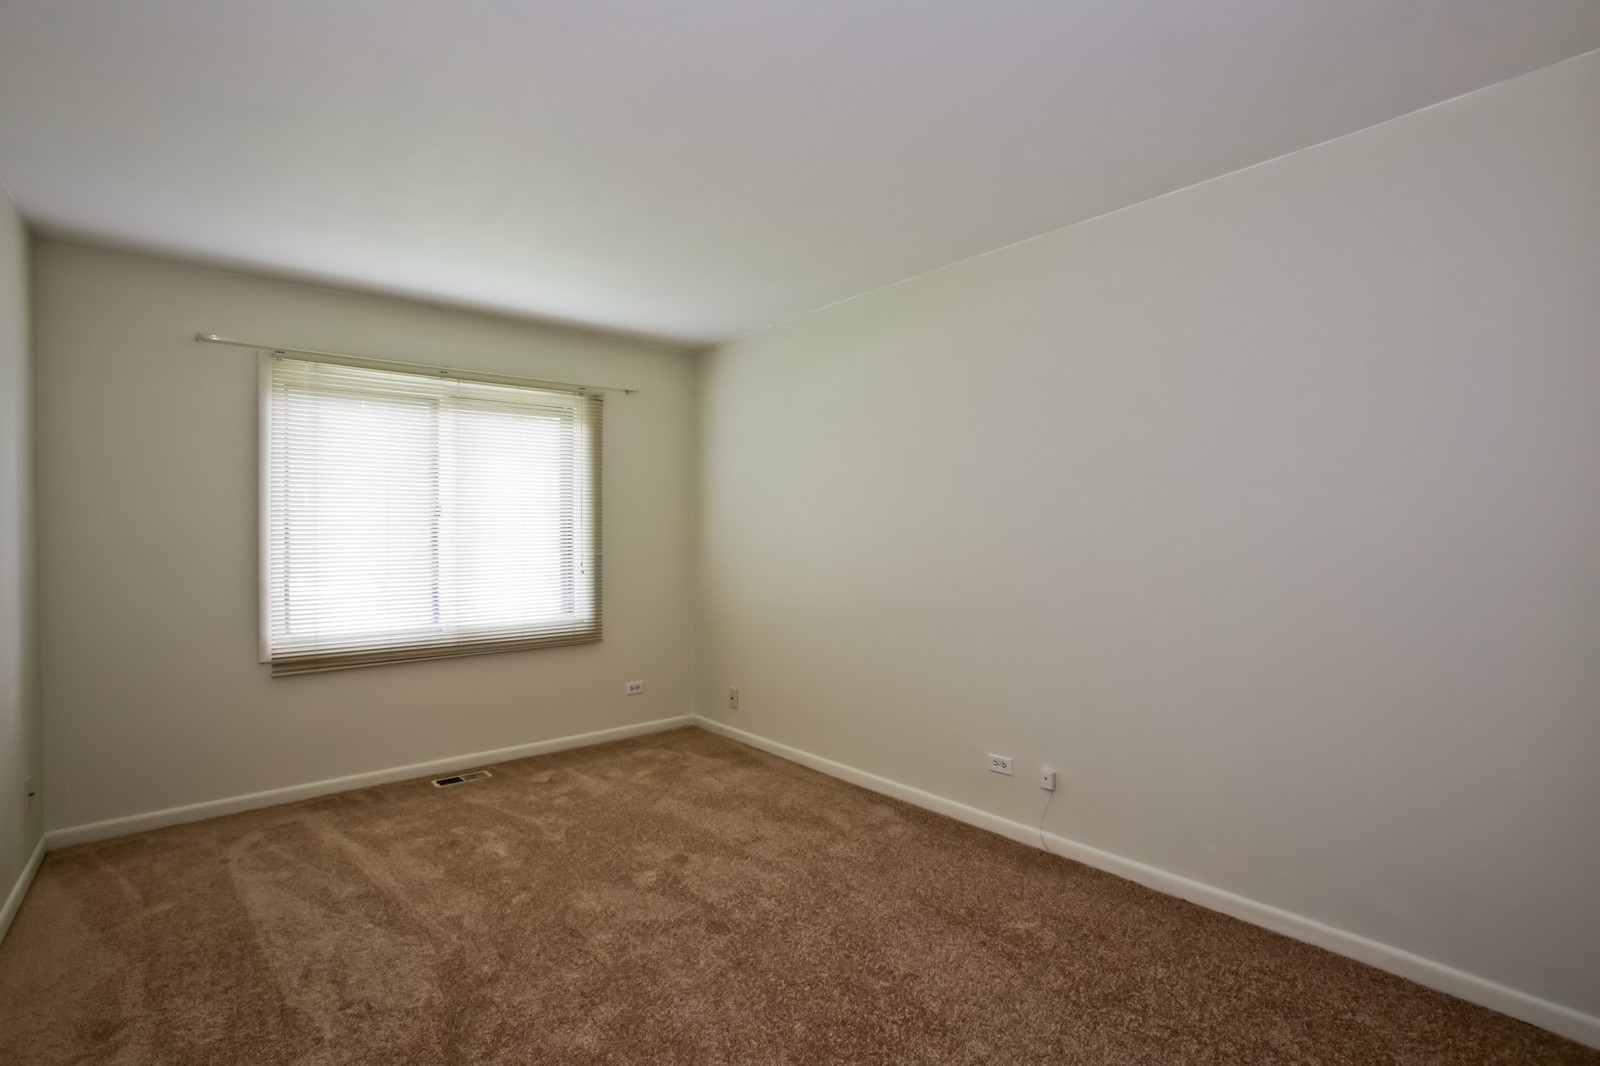 Real Estate Photography - 2811 Hobson Rd, Unit 3, Woodridge, IL, 60517 - Bedroom